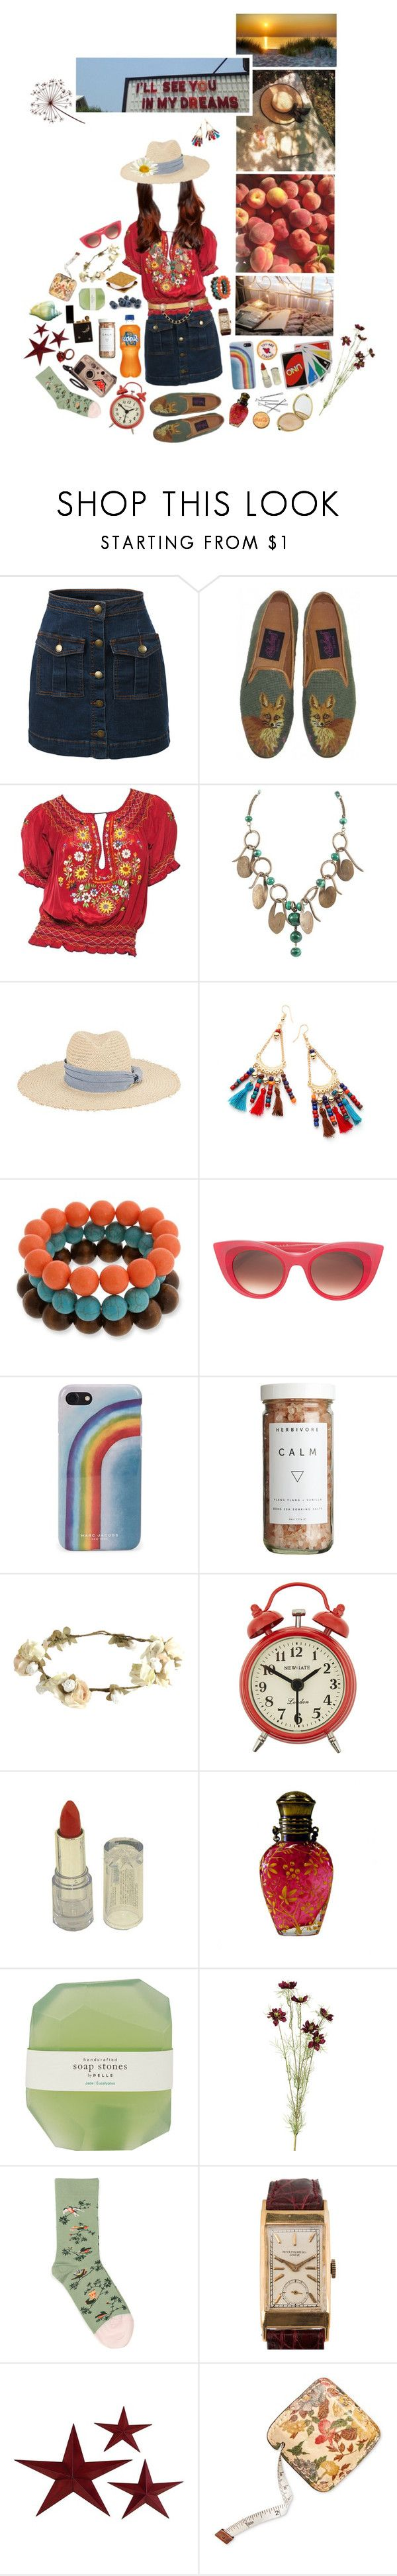 """""""summer of flowers"""" by whimsical-angst ❤ liked on Polyvore featuring LE3NO, Hat Attack, Erica Lyons, Thierry Lasry, Marc Jacobs, CB2, eliurpi, Newgate, Decades and Pelle"""